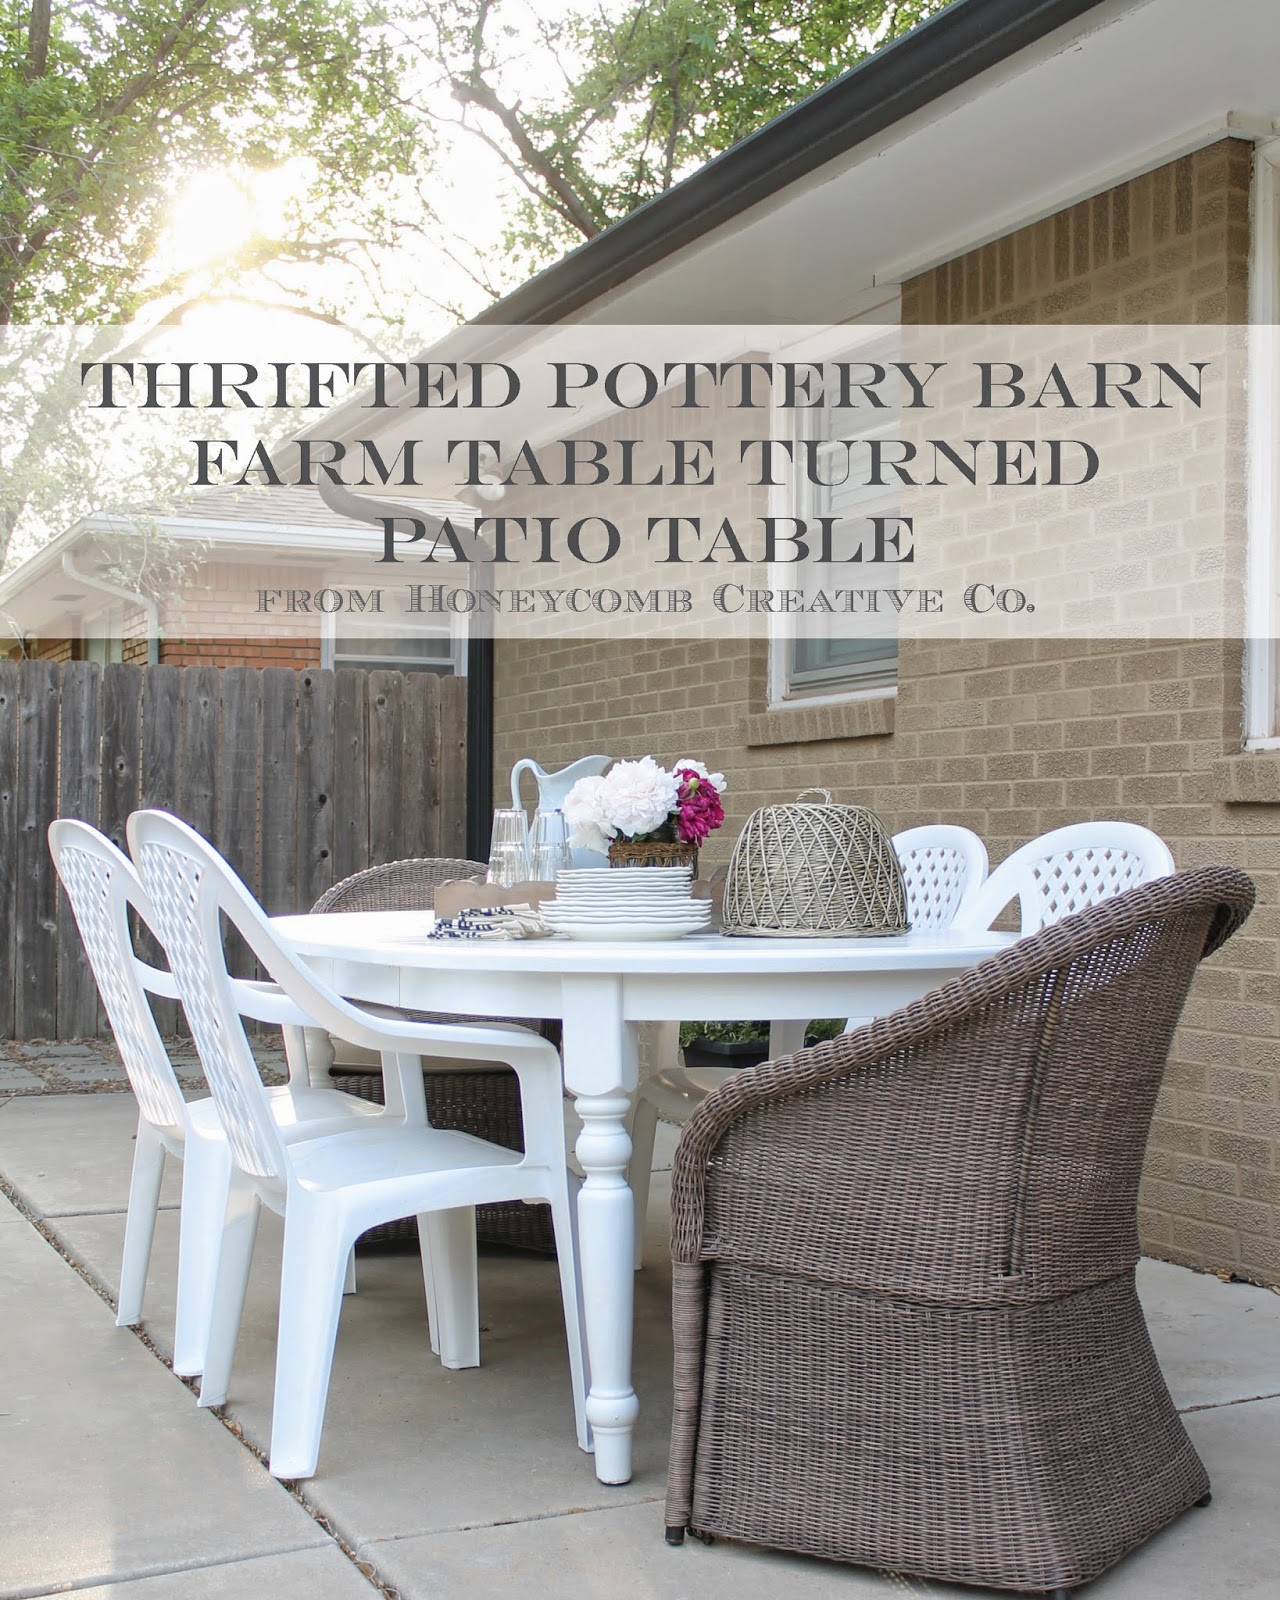 12th And White Thrifted Pottery Barn Table How To Turn Indoor Furniture Into Outdoor Furniture